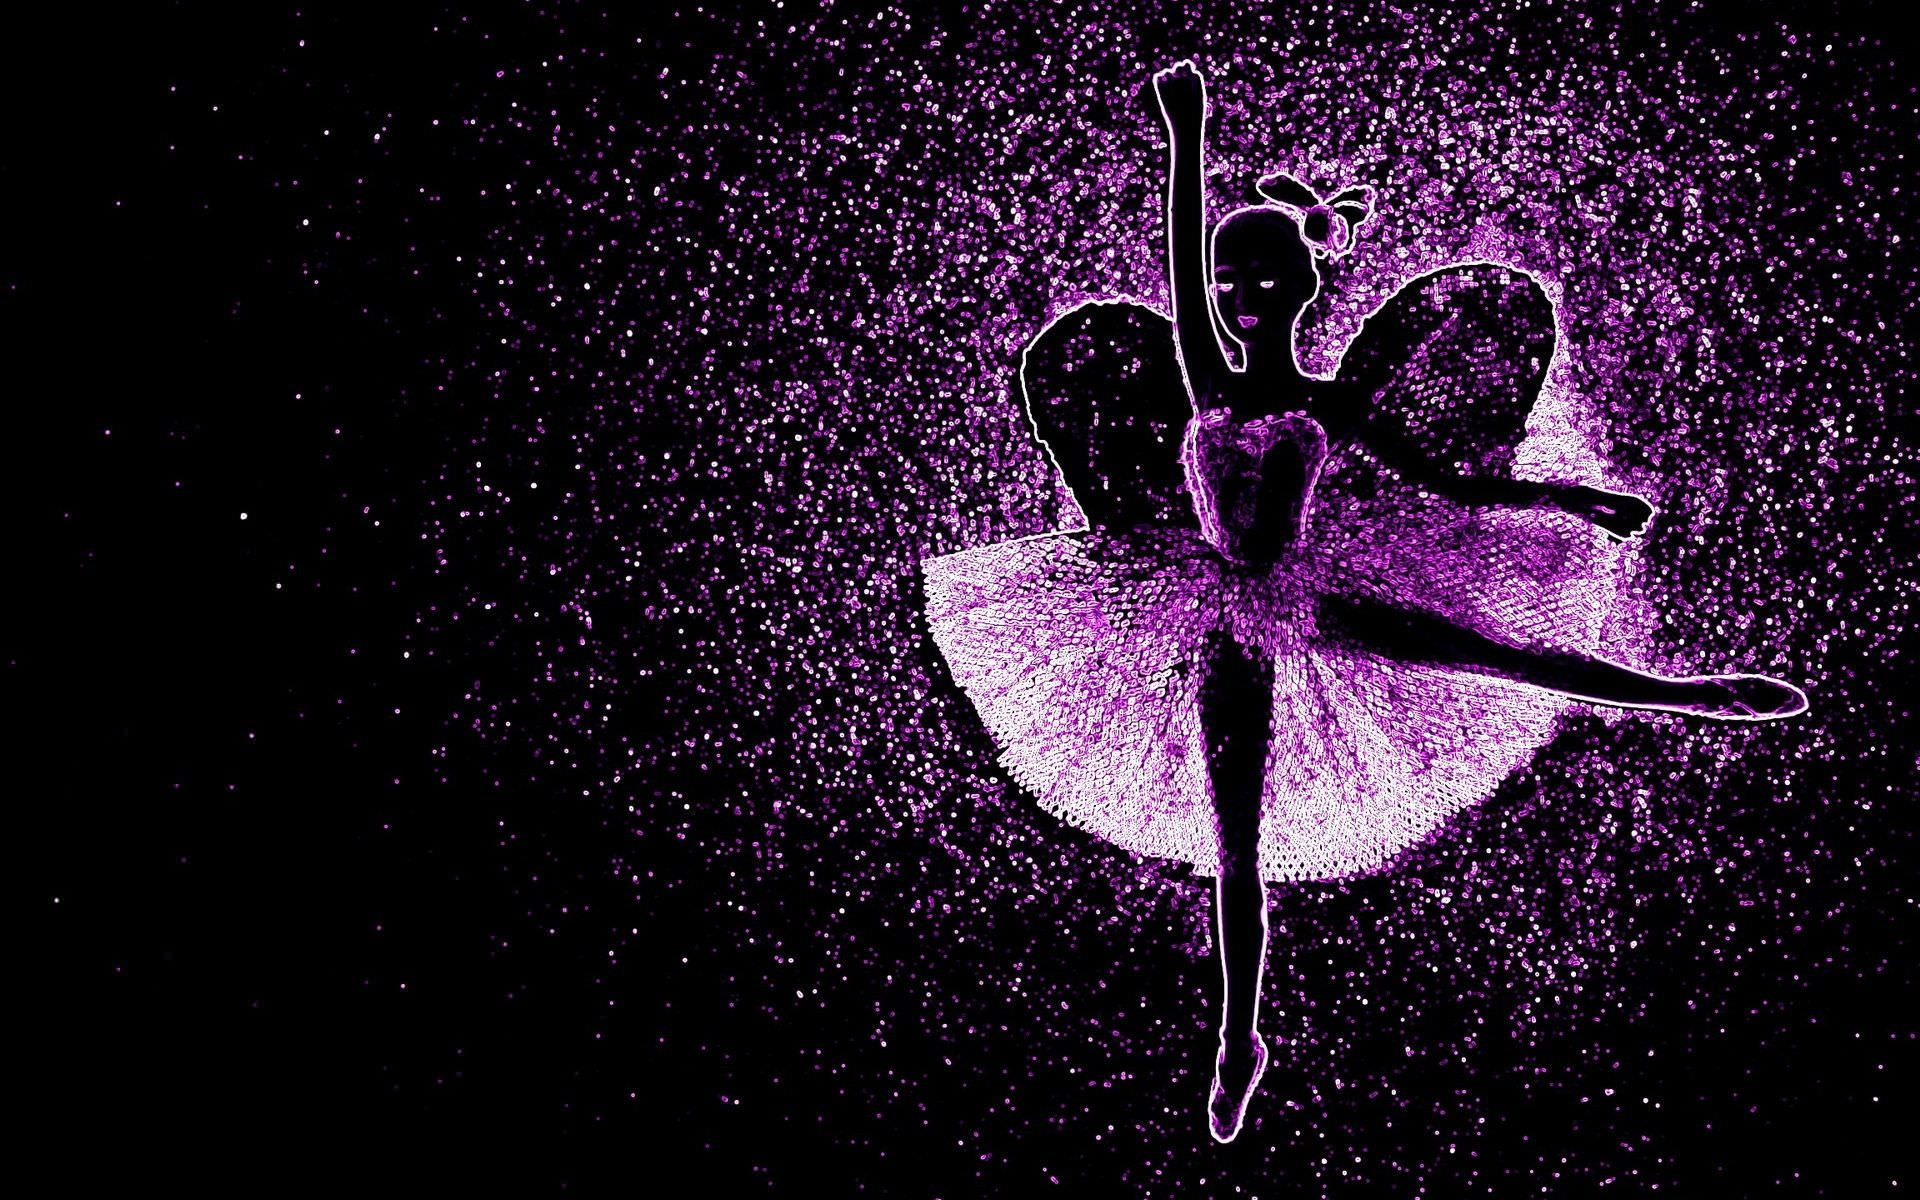 46 Ballet Desktop Wallpaper On Wallpapersafari